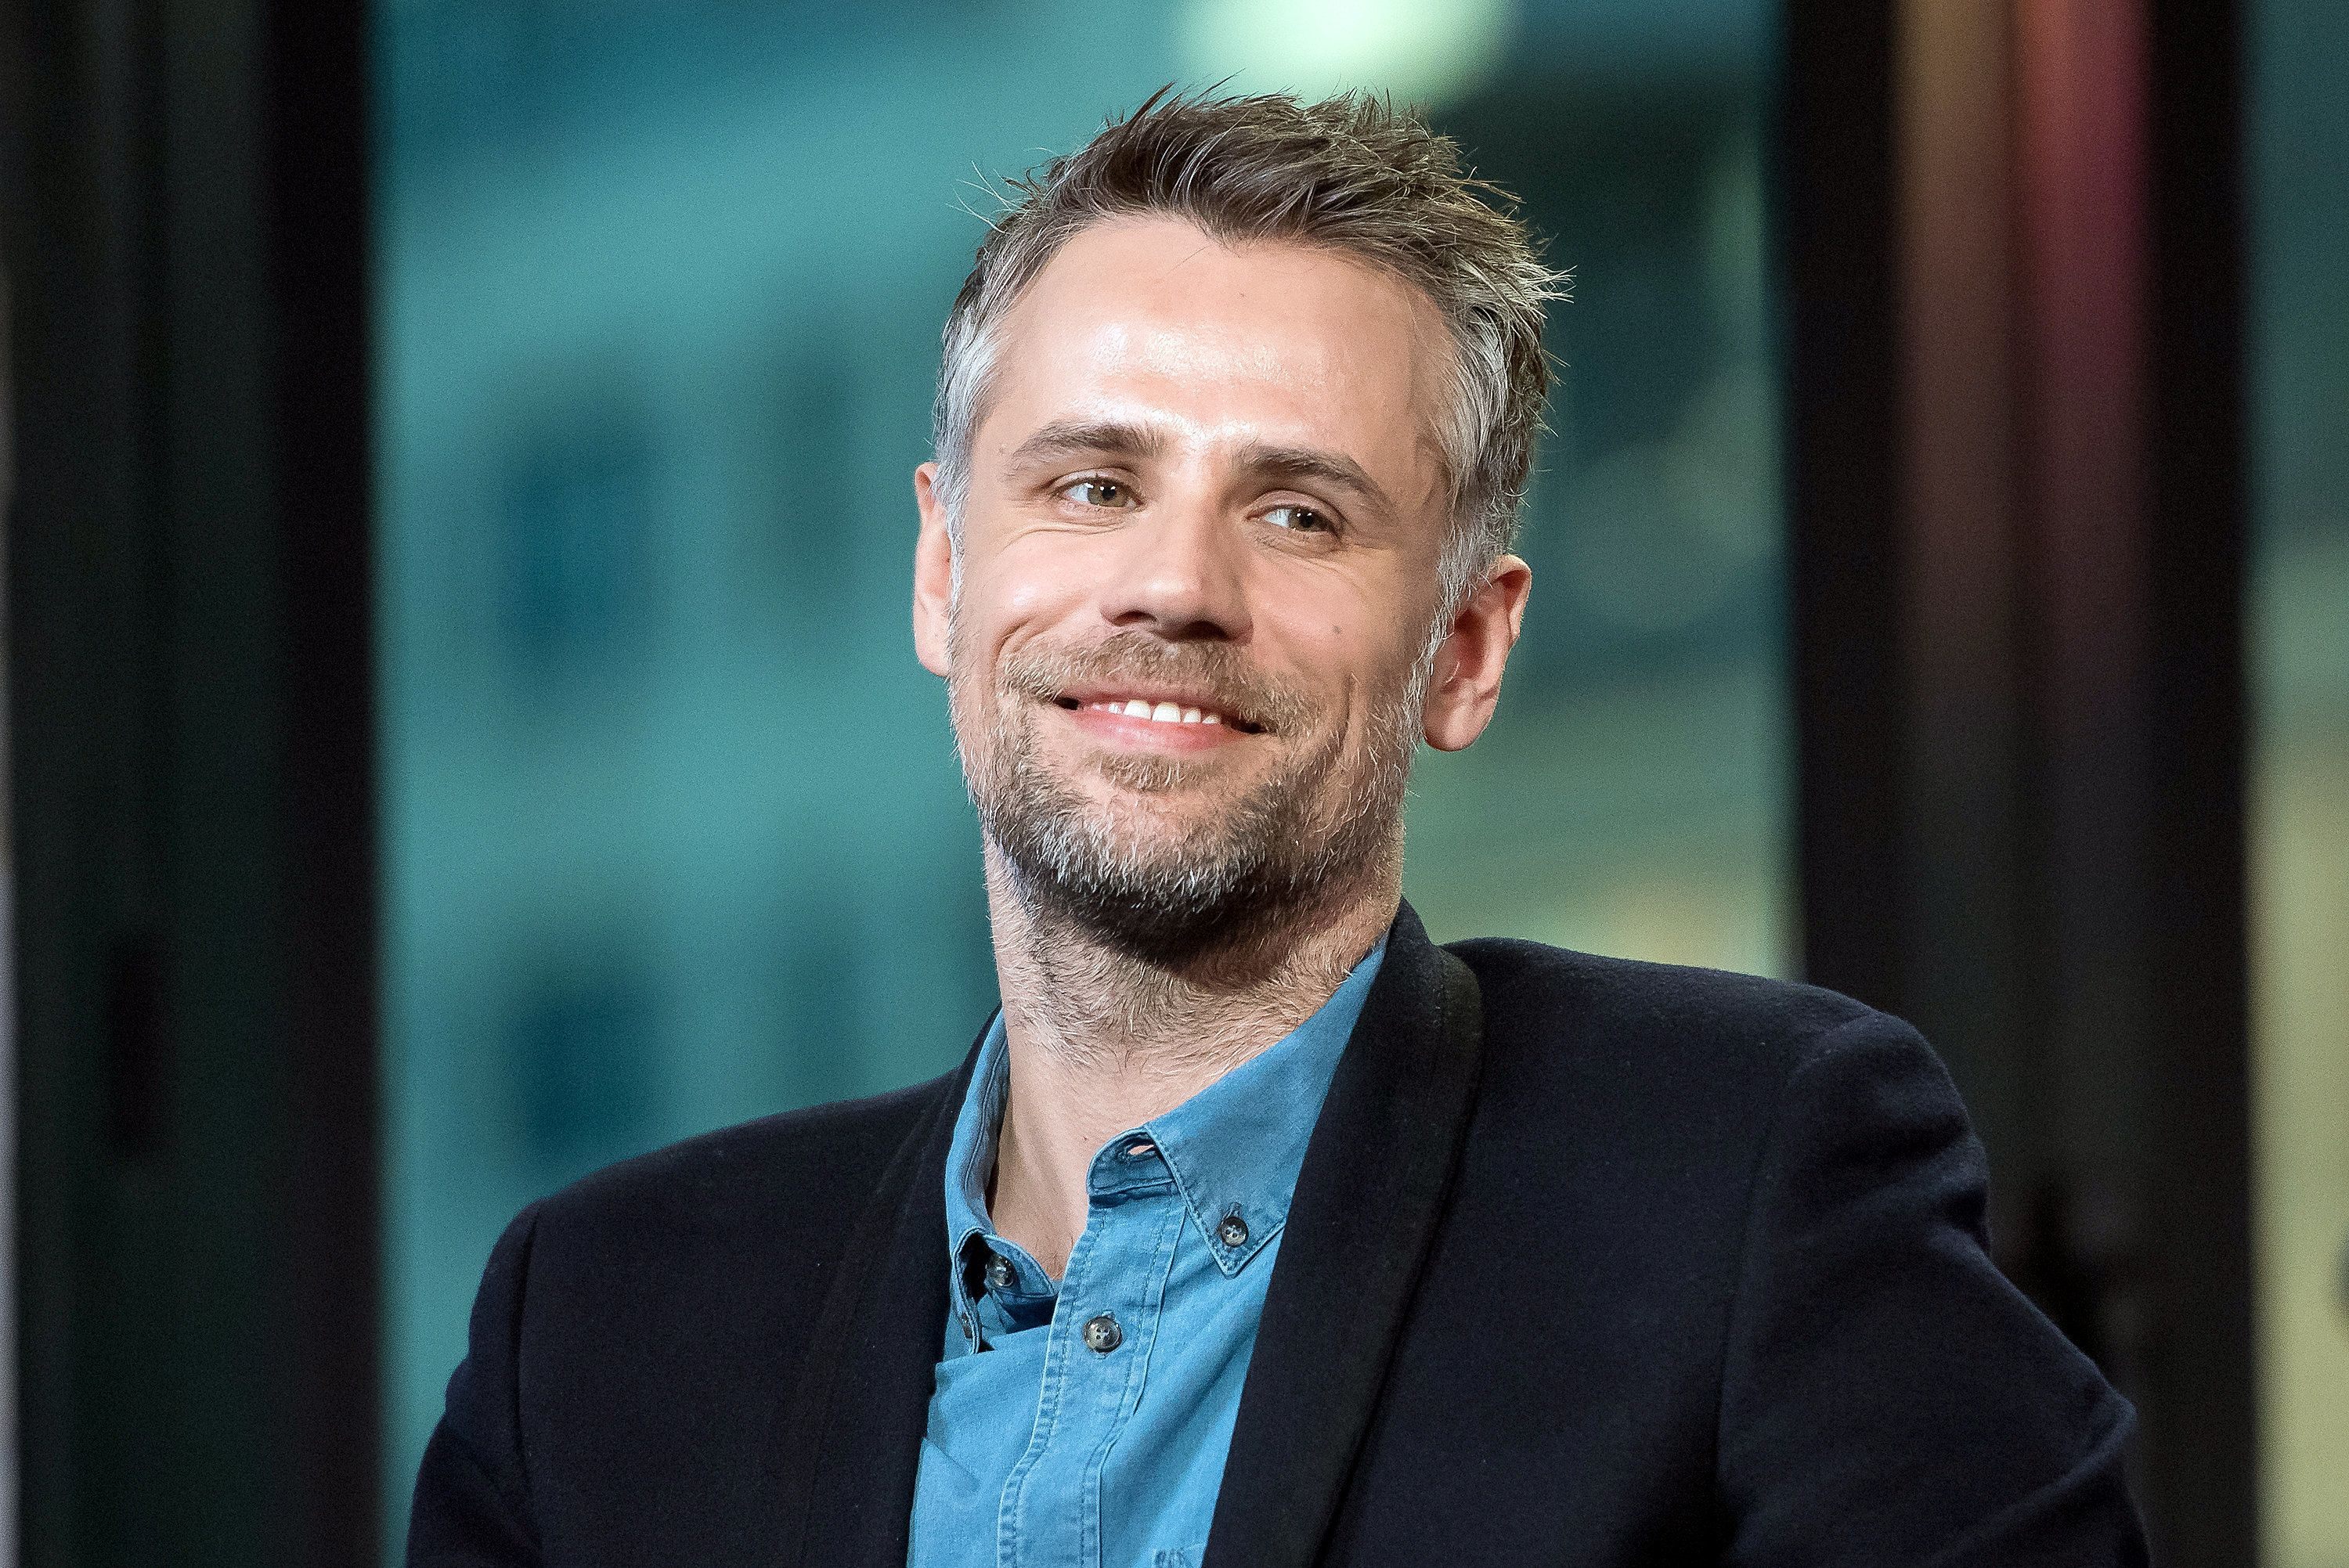 RECOVERING: Richard Bacon Thanks Wife In Touching Message As He Prepares To Leave